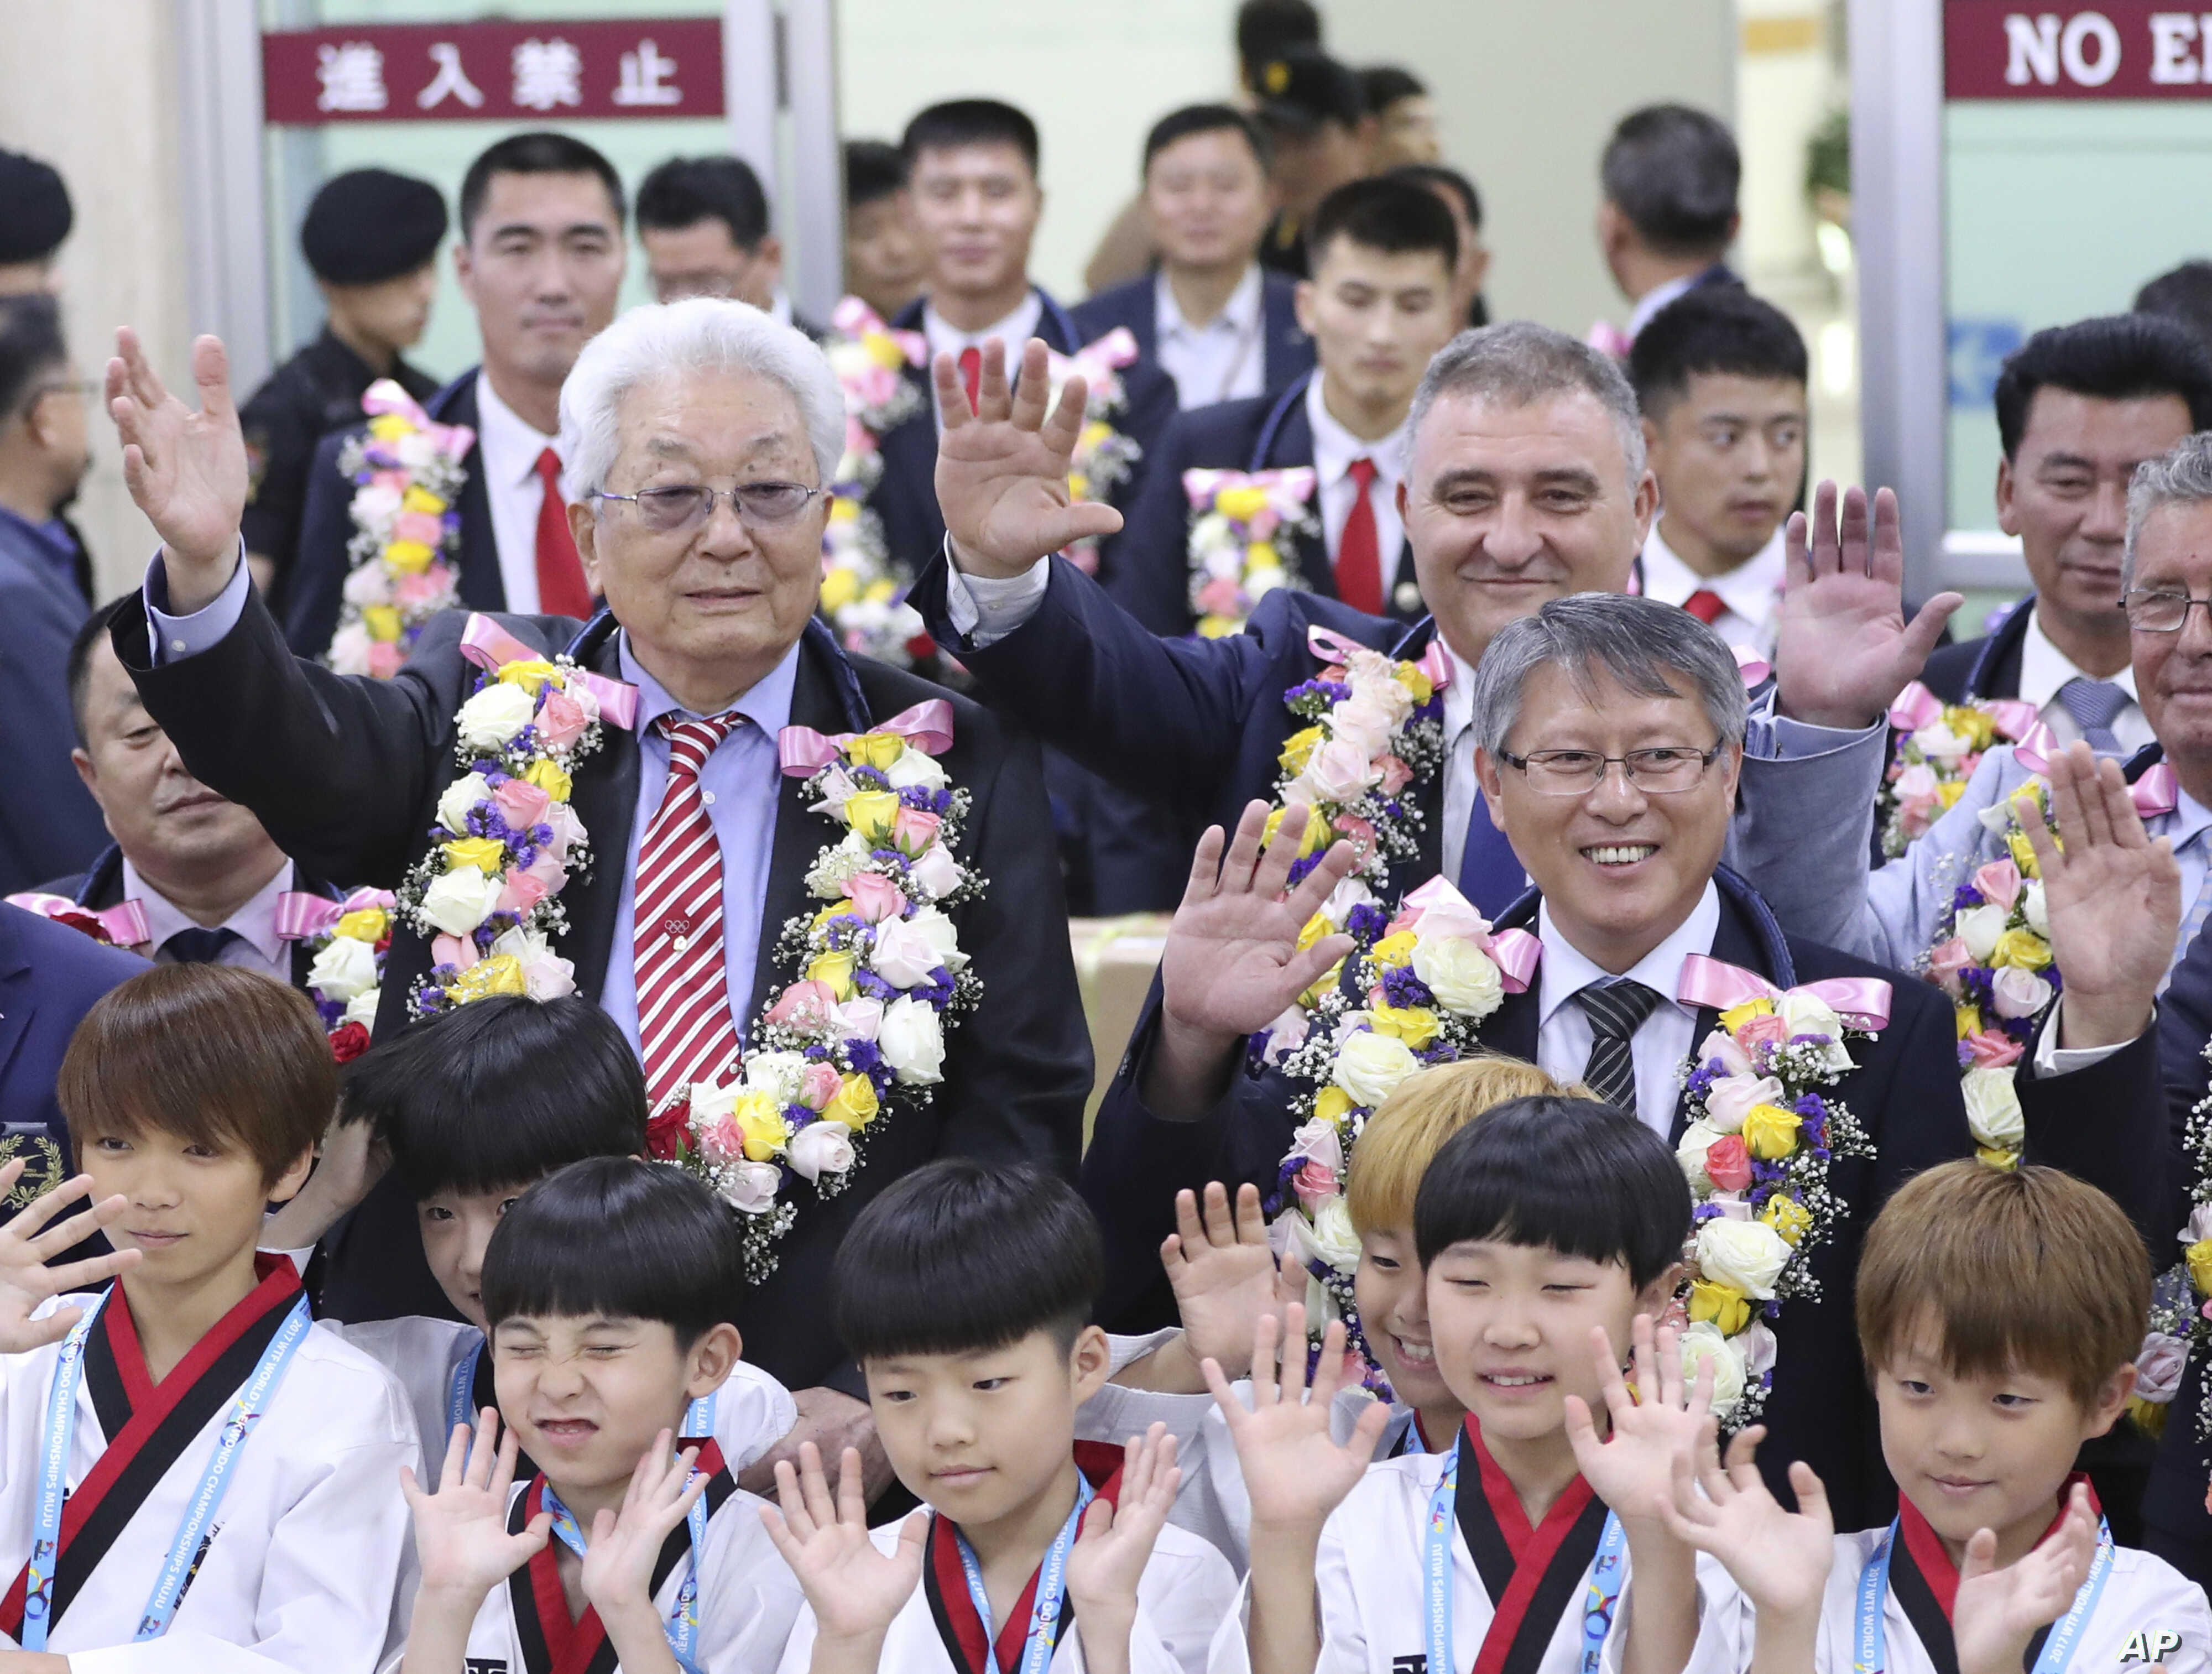 North Korea's IOC member Chang Ung, middle row left, waves with officials of International Taekwondo Federation upon their arrival at Gimpo International Airport in Seoul, South Korea, June 23, 2017.